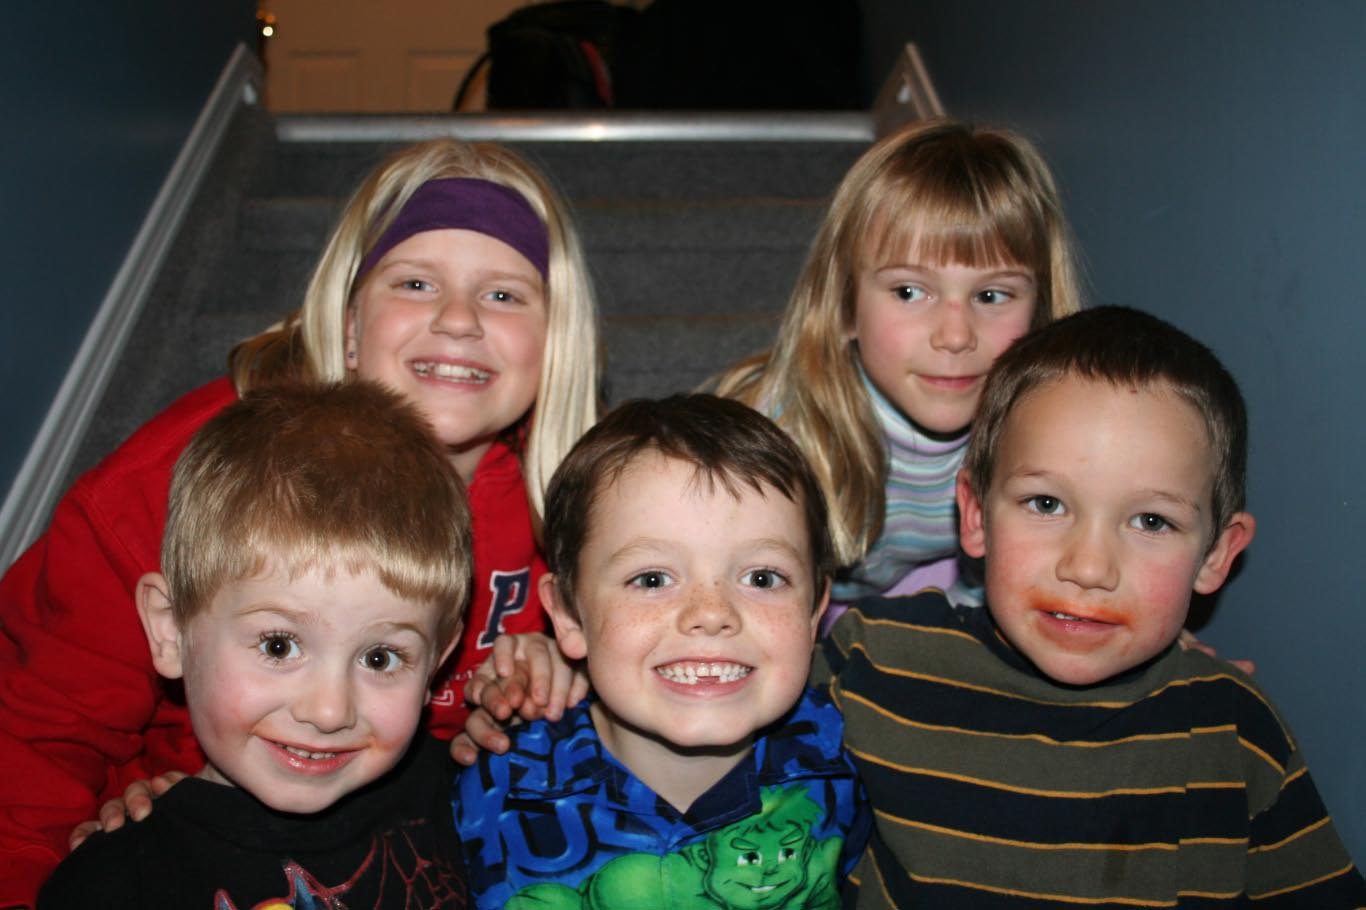 Some of the kids from the party